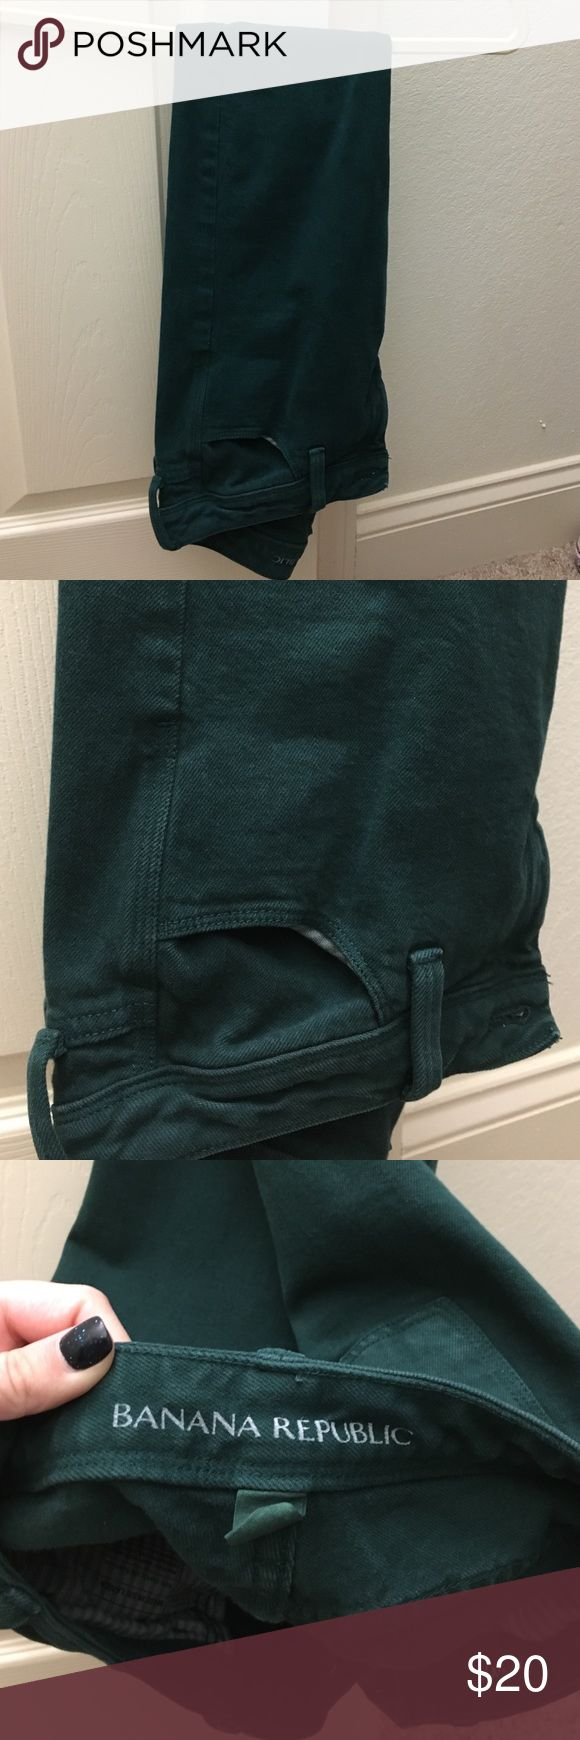 Banana Republic dark green ankle length jeans Dark green Banana Republic jeans ankle length. Worm a handful of times. Size 24P. Perfect for fall/winter wardrobe Banana Republic Jeans Ankle & Cropped